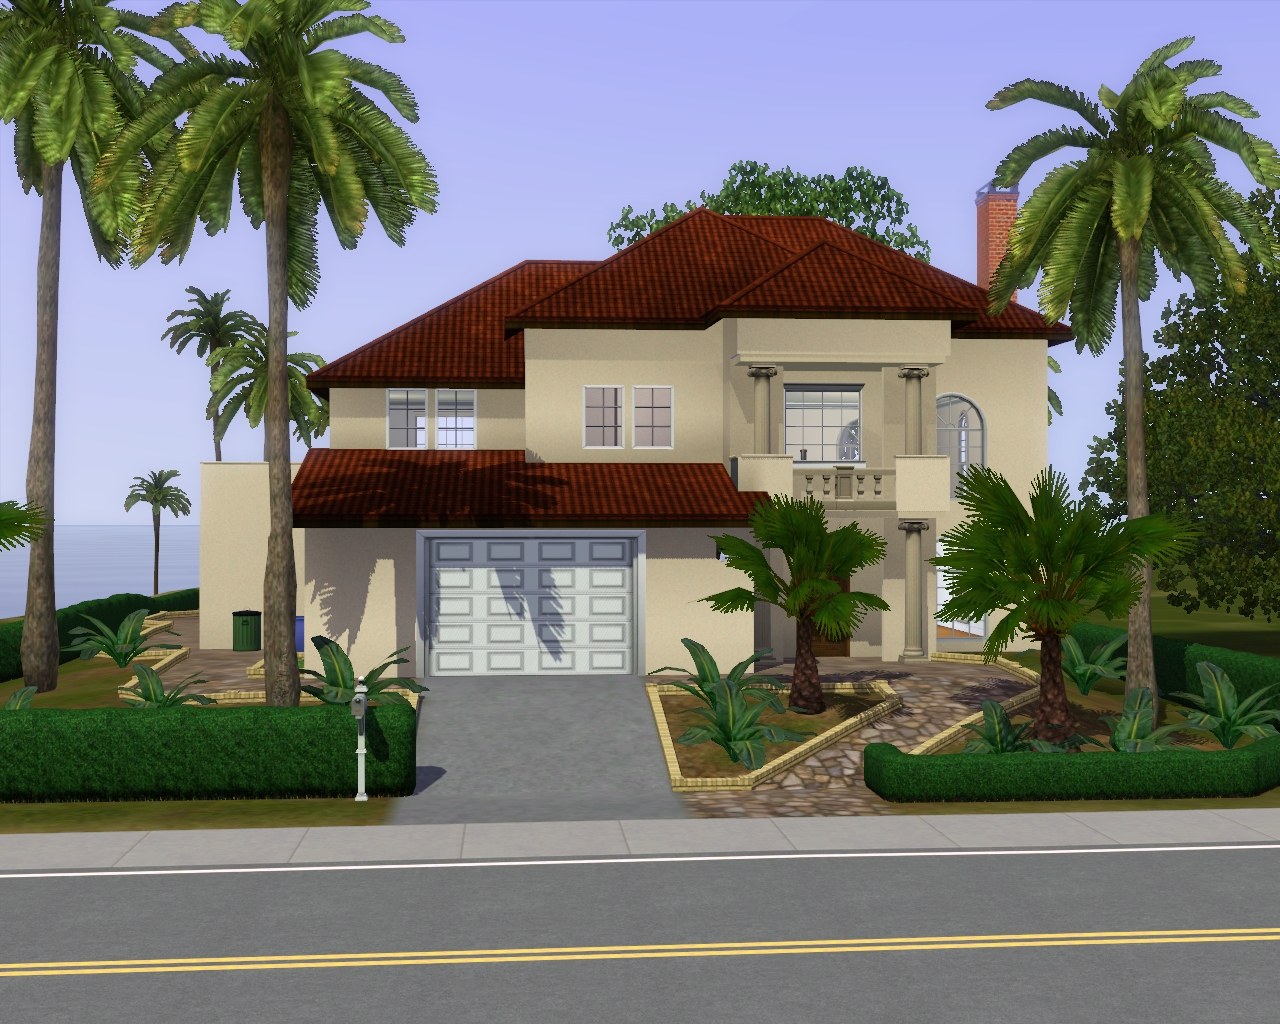 Summer's Little Sims 3 Garden: Starlight Shores (The Sims 3